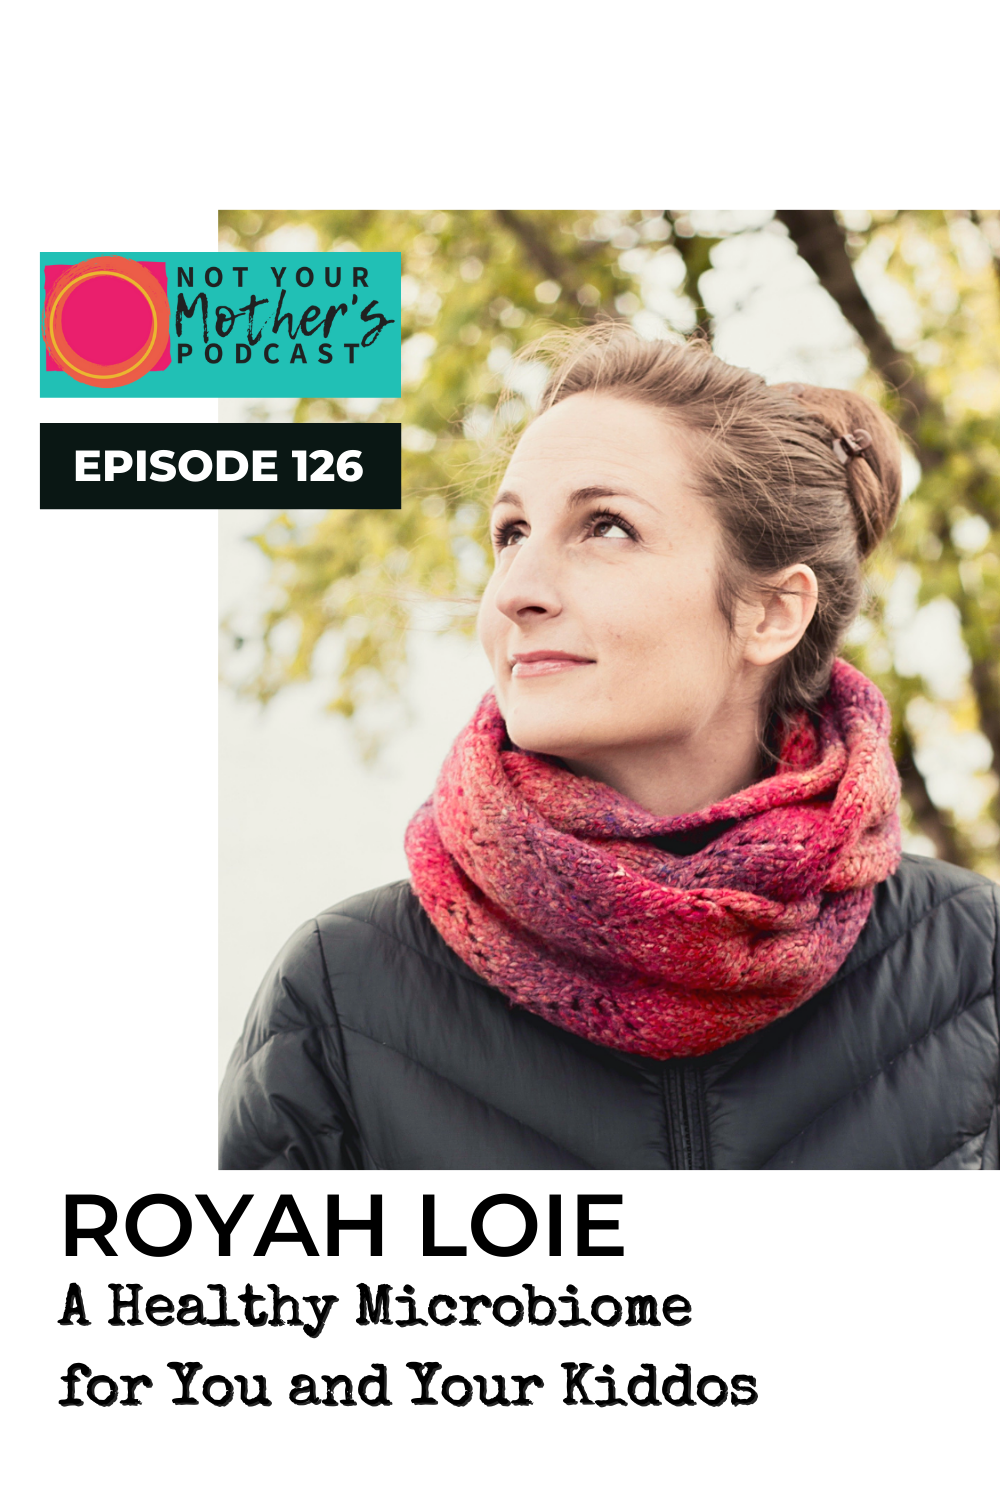 A Healthy Microbiome for You and Your Kiddos with Royah Loie PIN